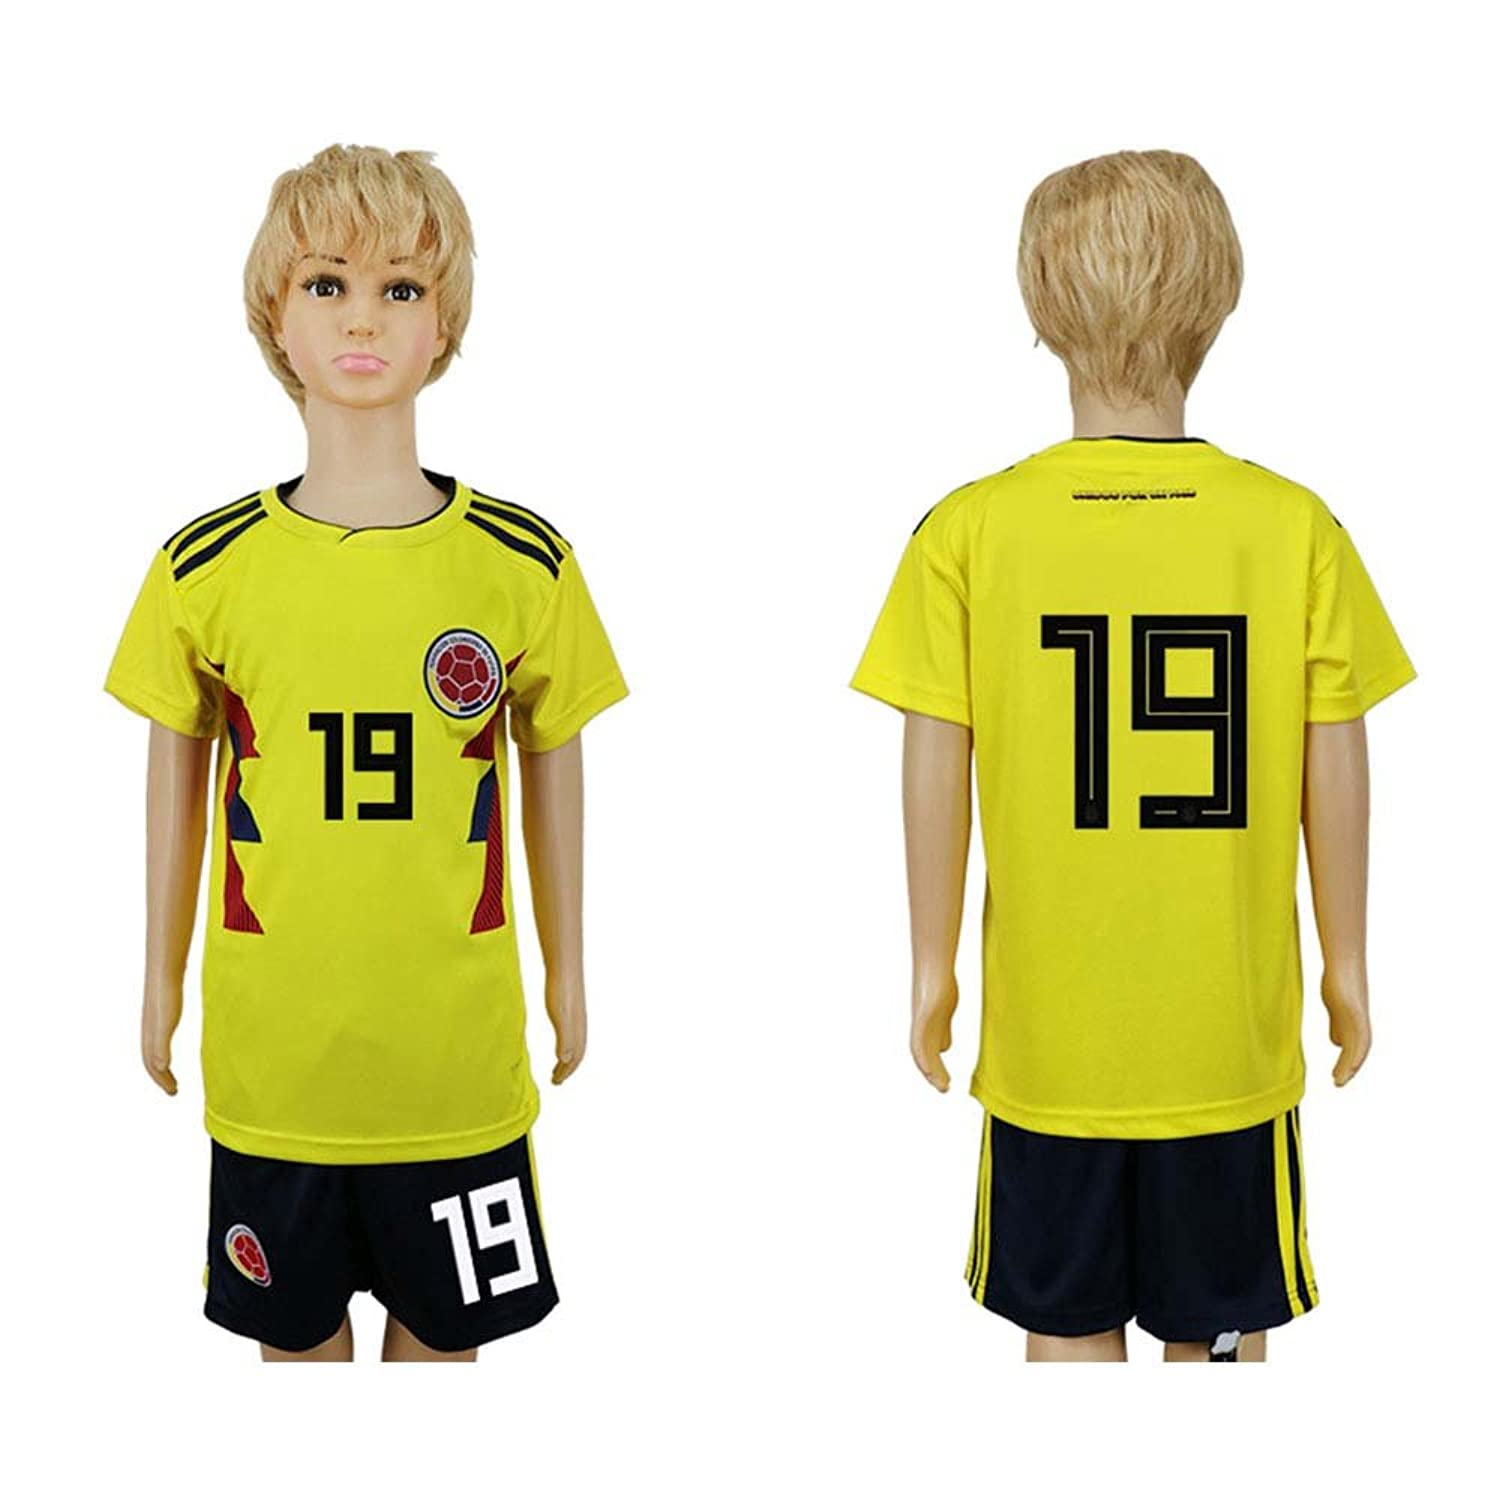 Puizozi SHIRT ボーイズ B07D3KFFPM20# (5 to 6 Years Old)